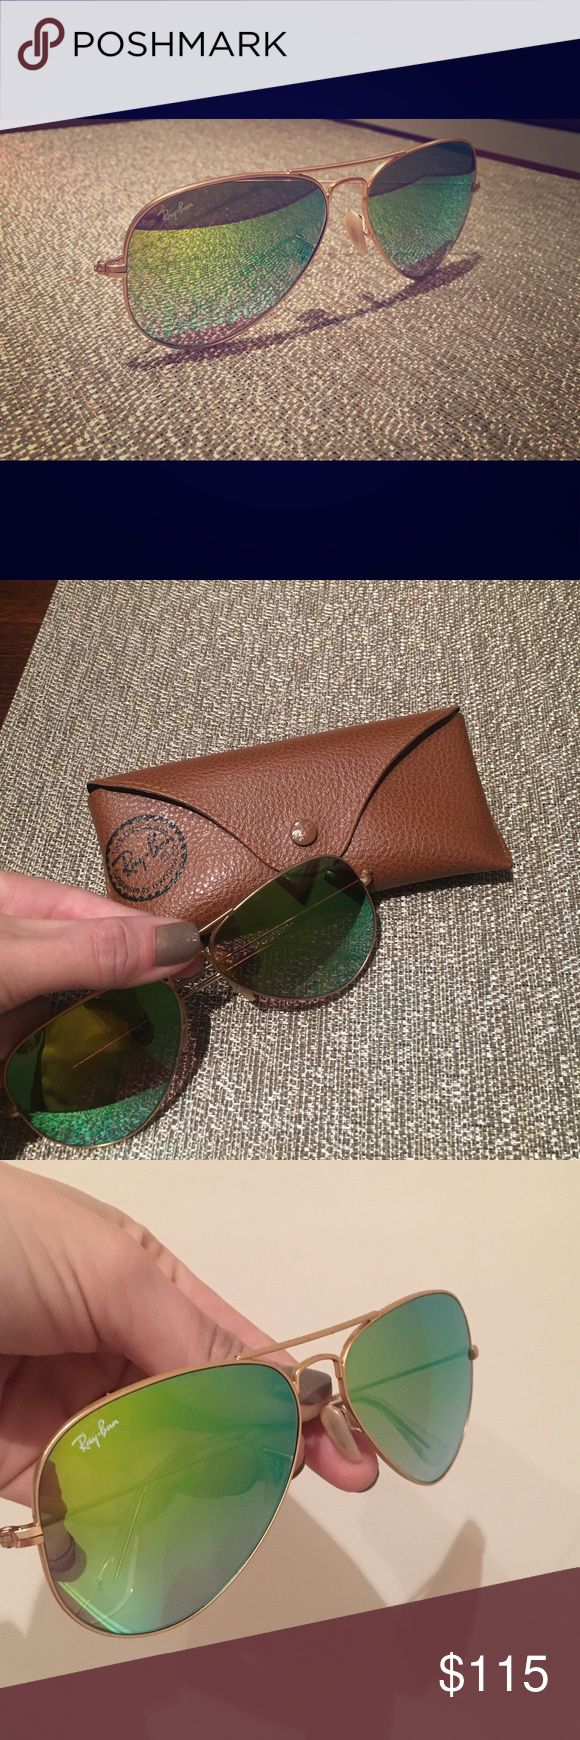 replica ray bans with logo